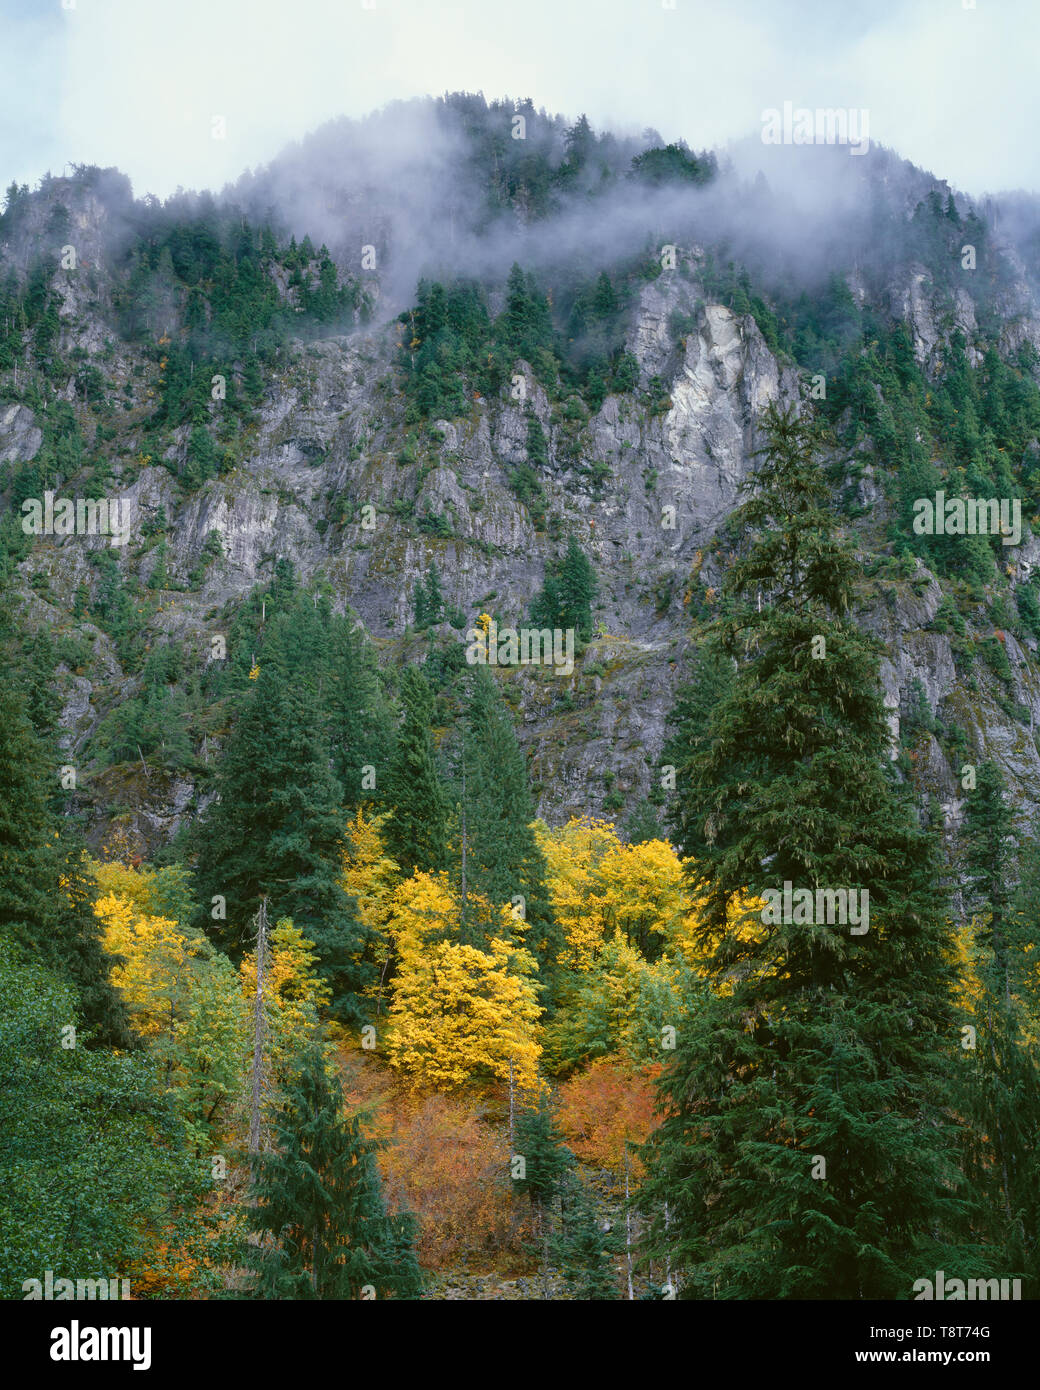 USA, Washington, Mt. Baker Snoqualmie National Forest, Foggy upper slopes of Sheep Mountain above fall colored maples. - Stock Image